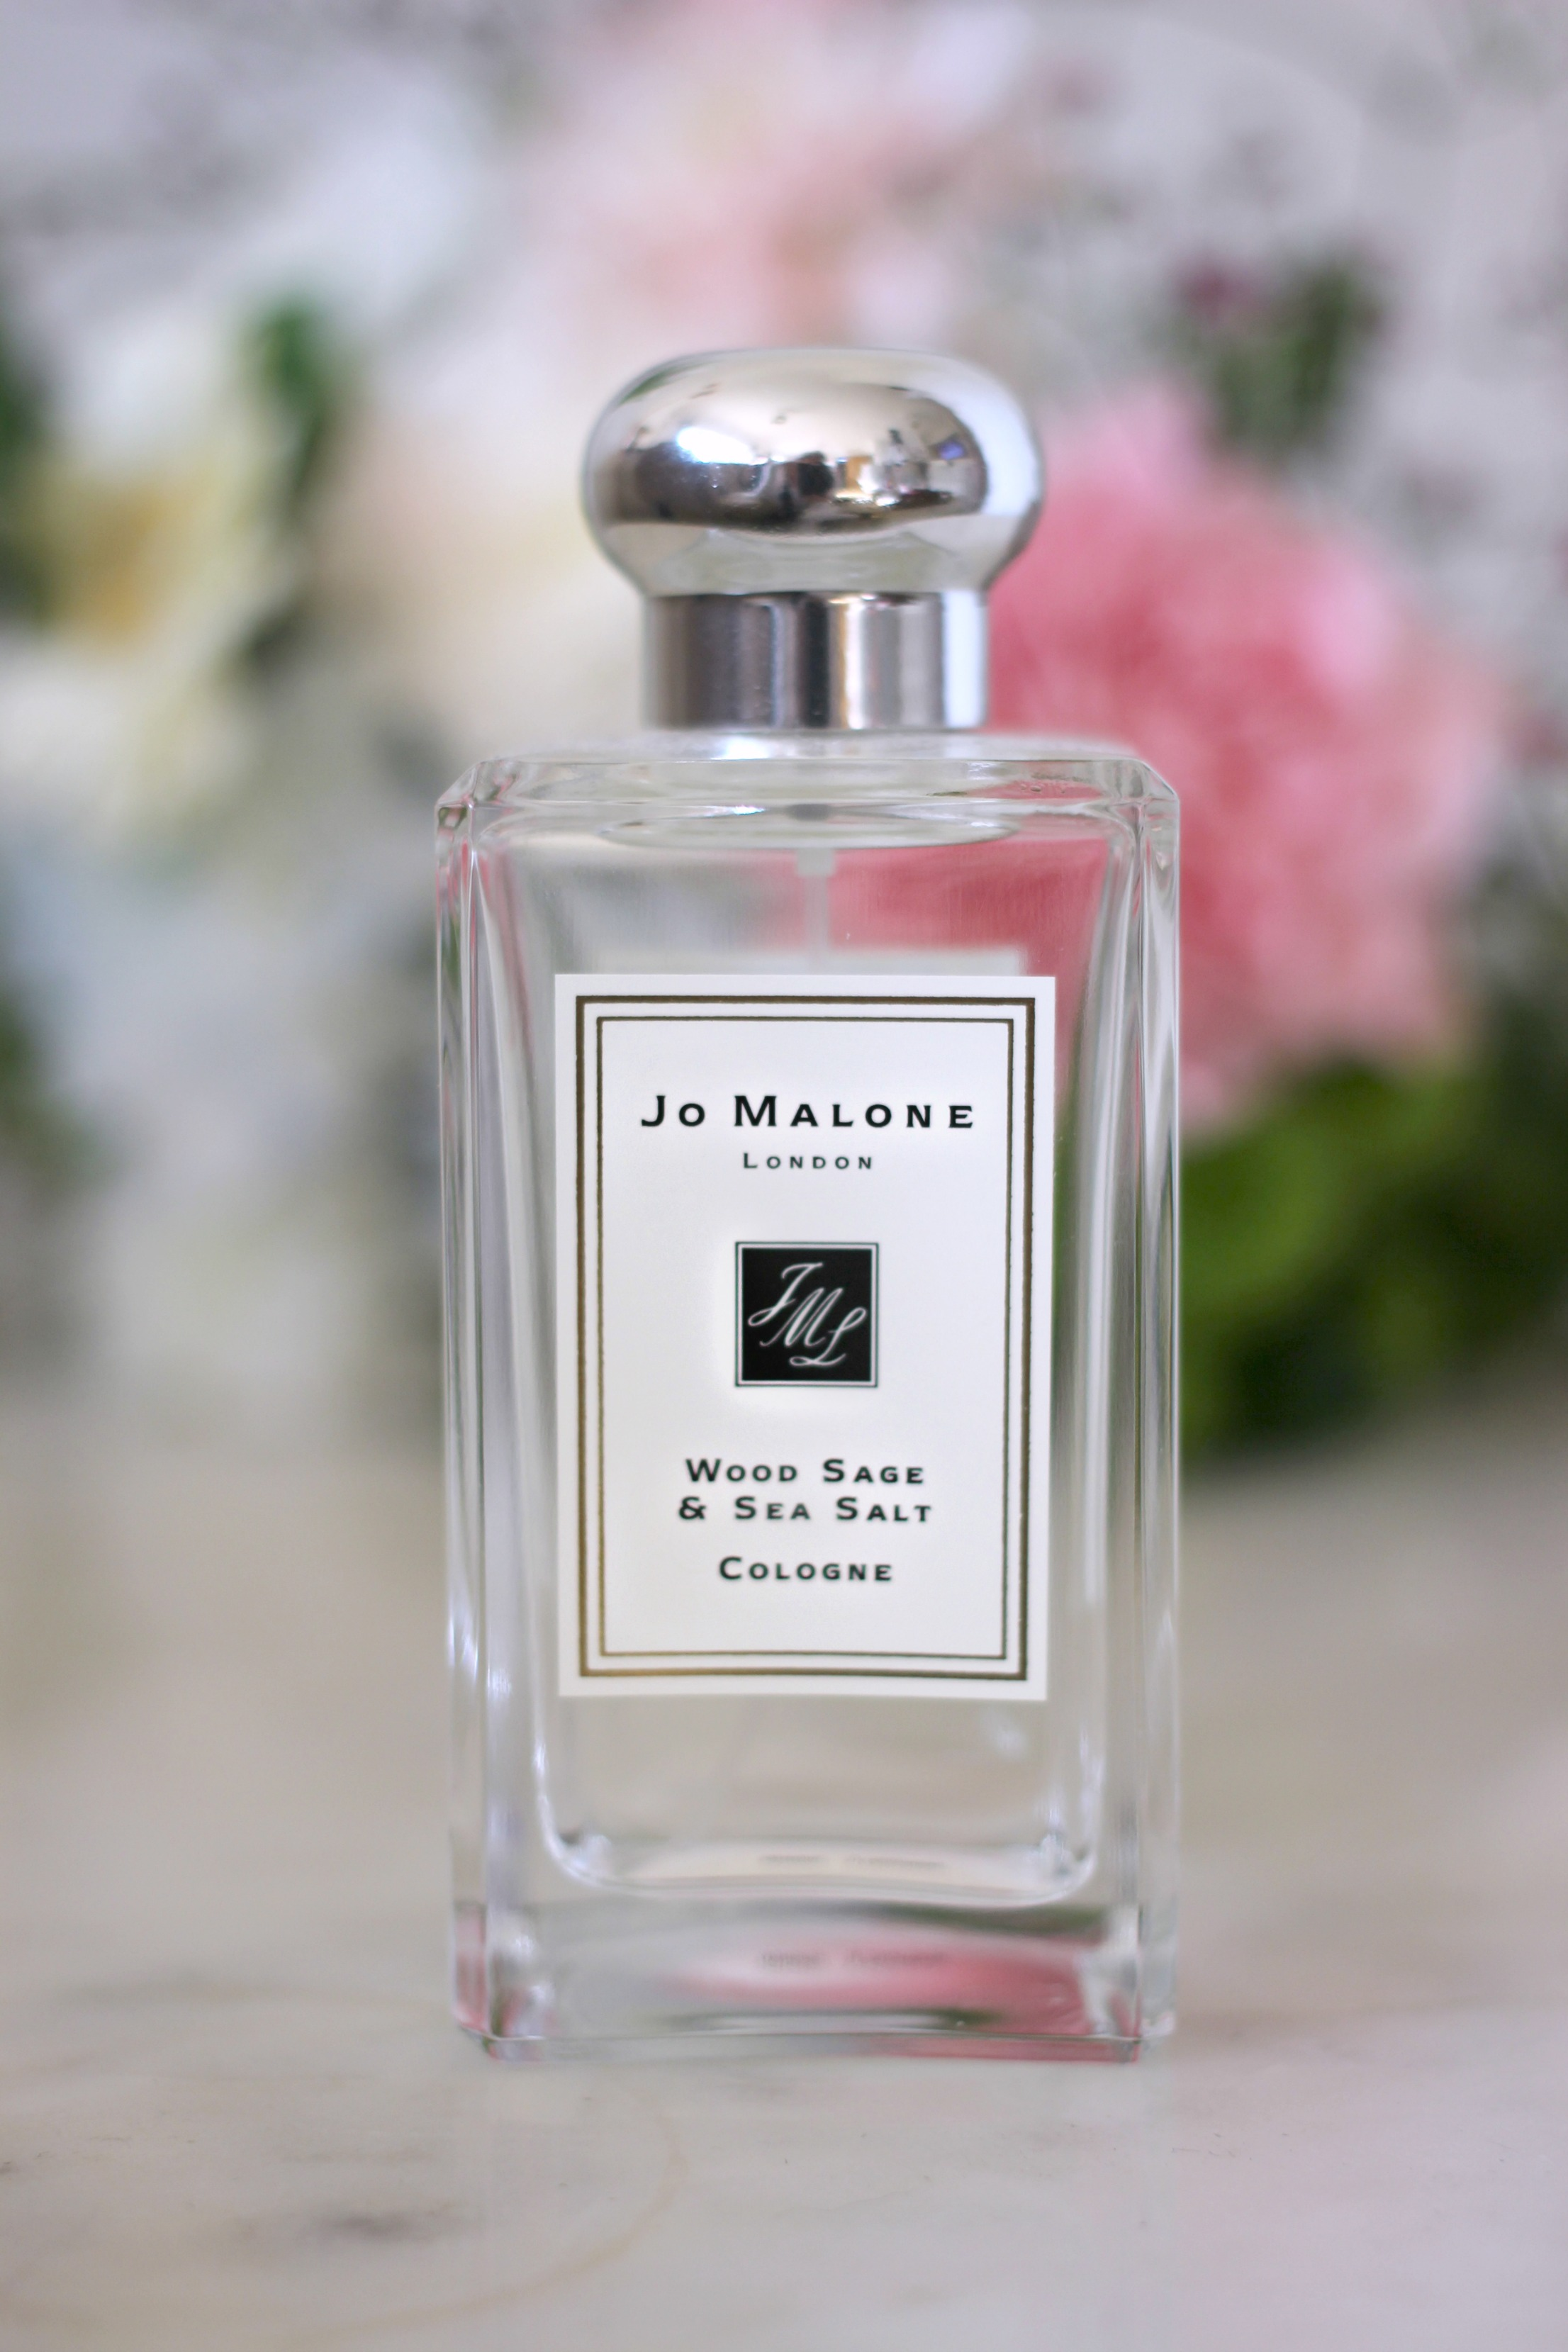 Luxury Mothers Day Gift Guide - Fashion Mumblr blog - Jo Malone London Wood Sage & Sea Salt